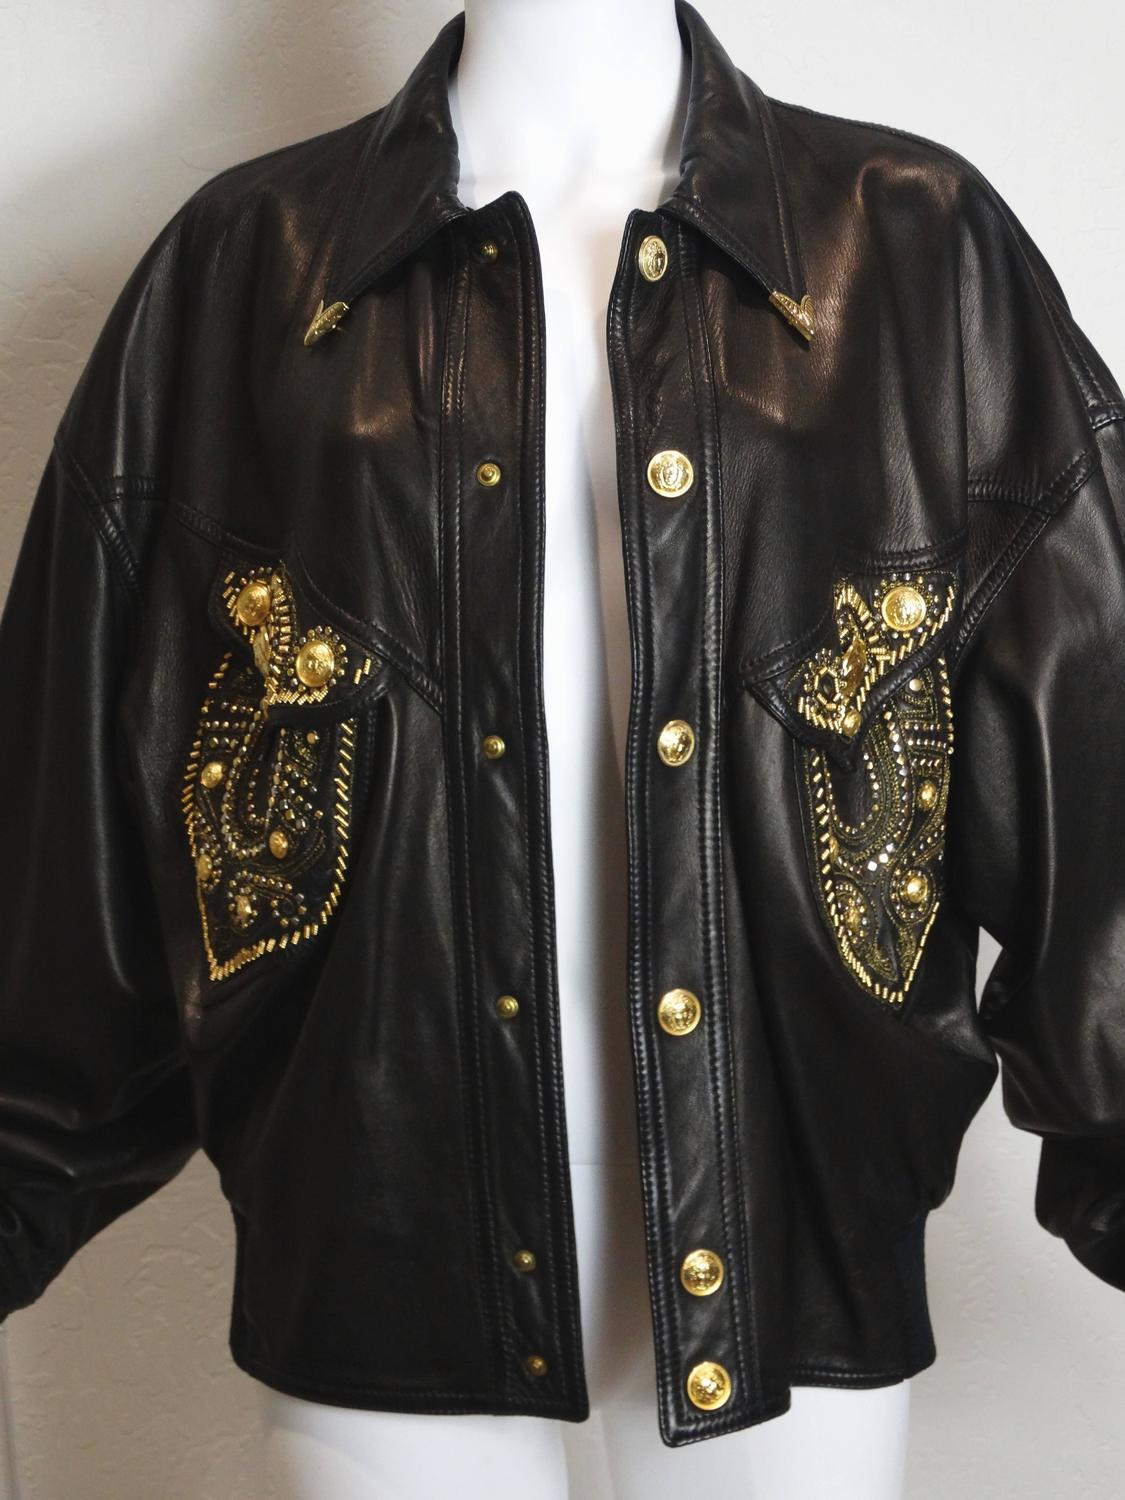 Motorcycle For Sale Az >> 1990s Gianni Versace Couture Motorcycle Jacket For Sale at ...